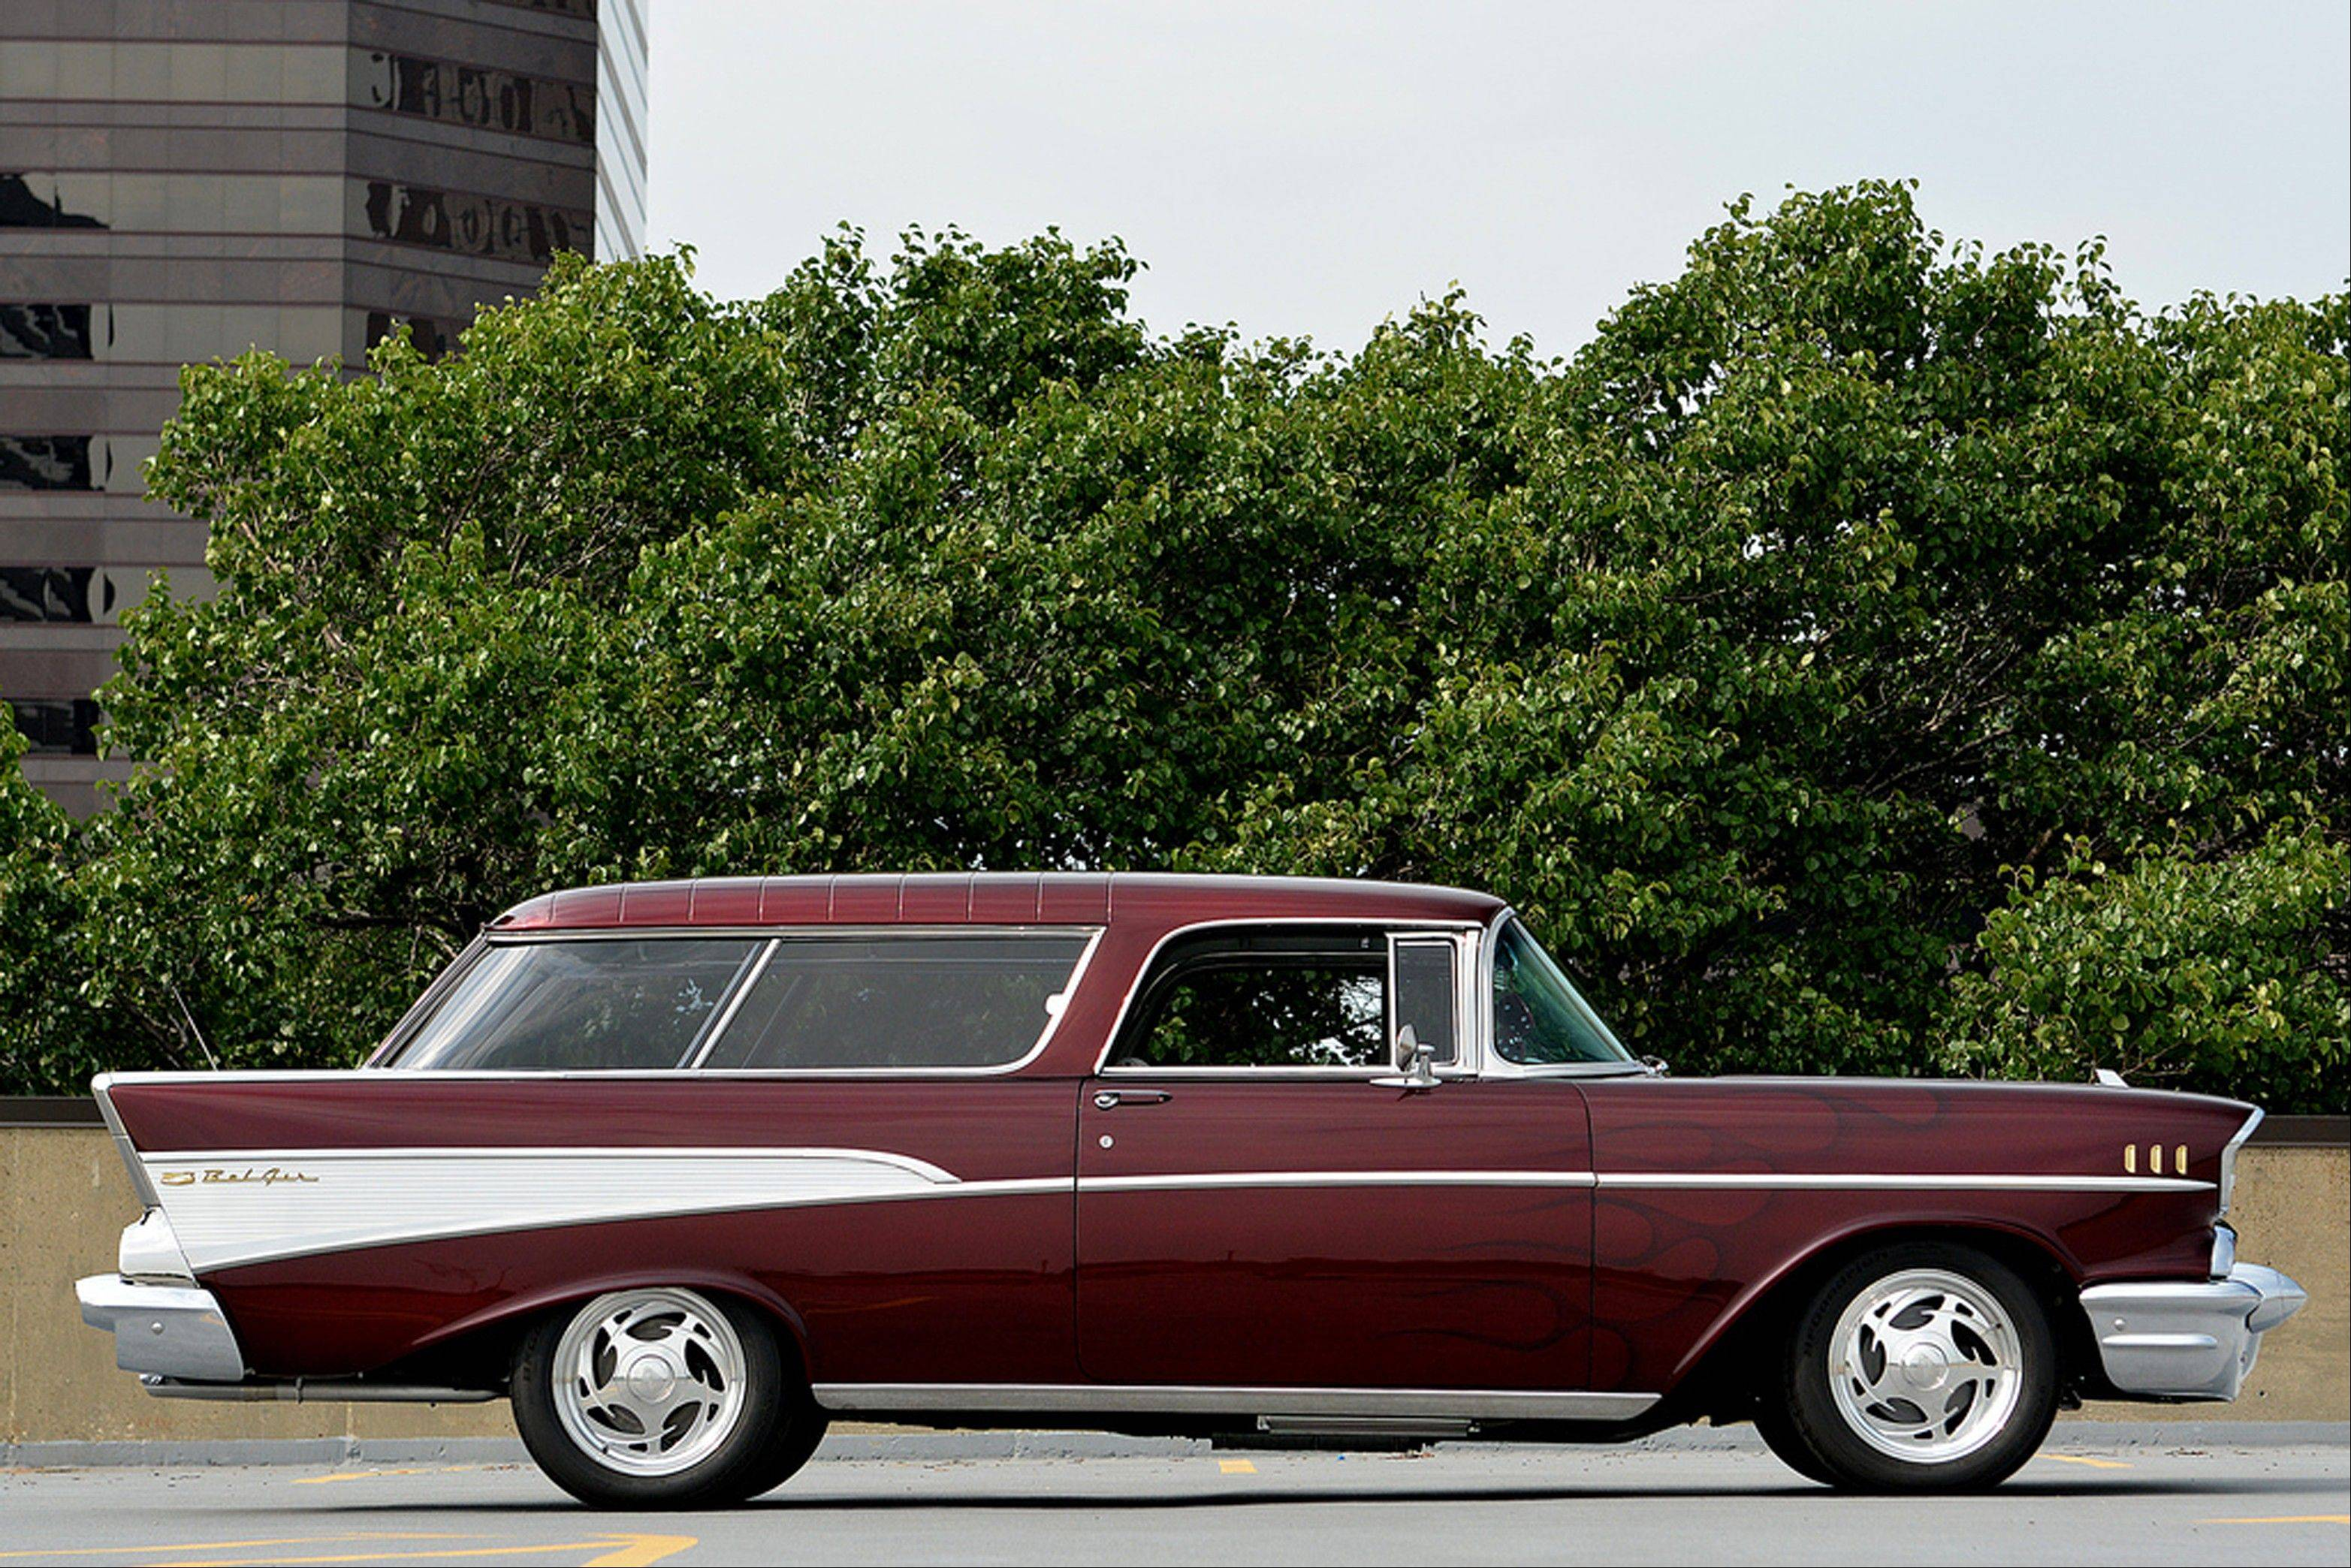 This 1957 Chevrolet Nomad pops with House of Kolor Candy Brandywine paint finished with ghost flames.